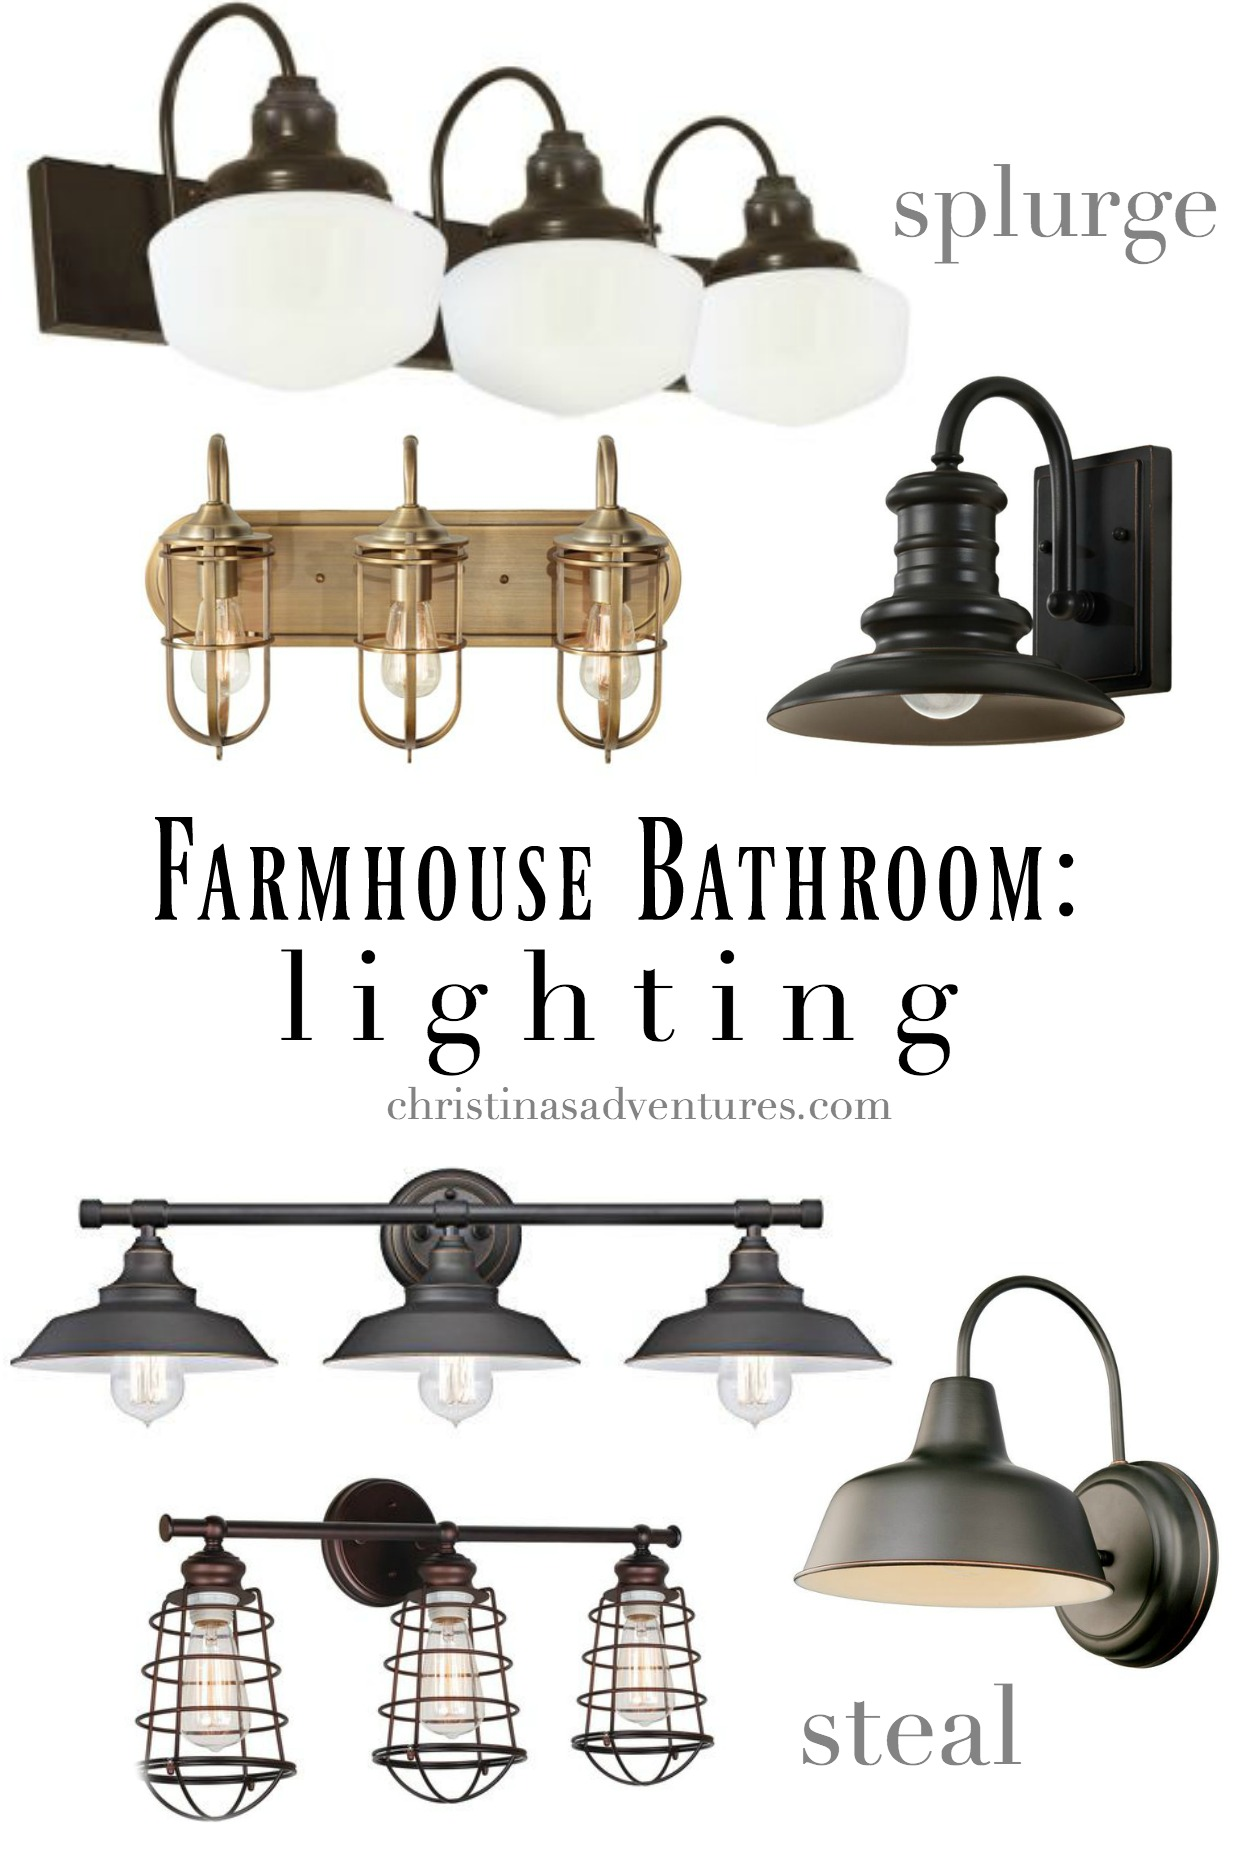 farmhouse bathroom lighting farmhouse bathroom design christinas adventures 12819